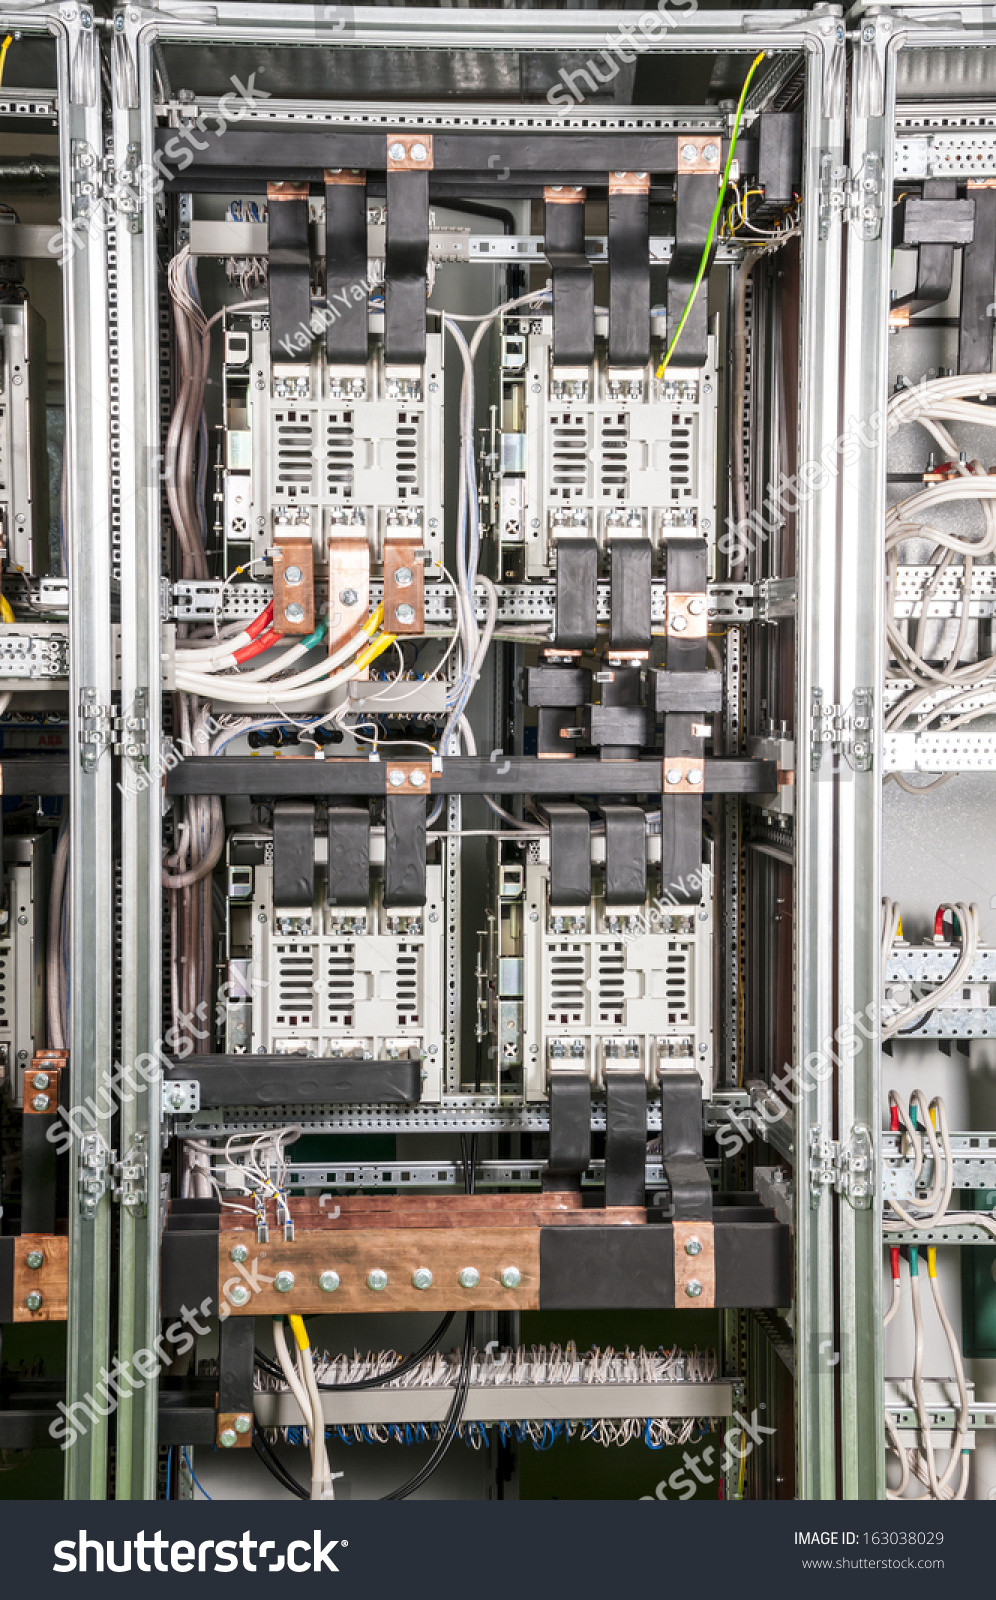 Industrial Power Wiring Electrical Inside Case Stock Photo Edit Now 996x1600